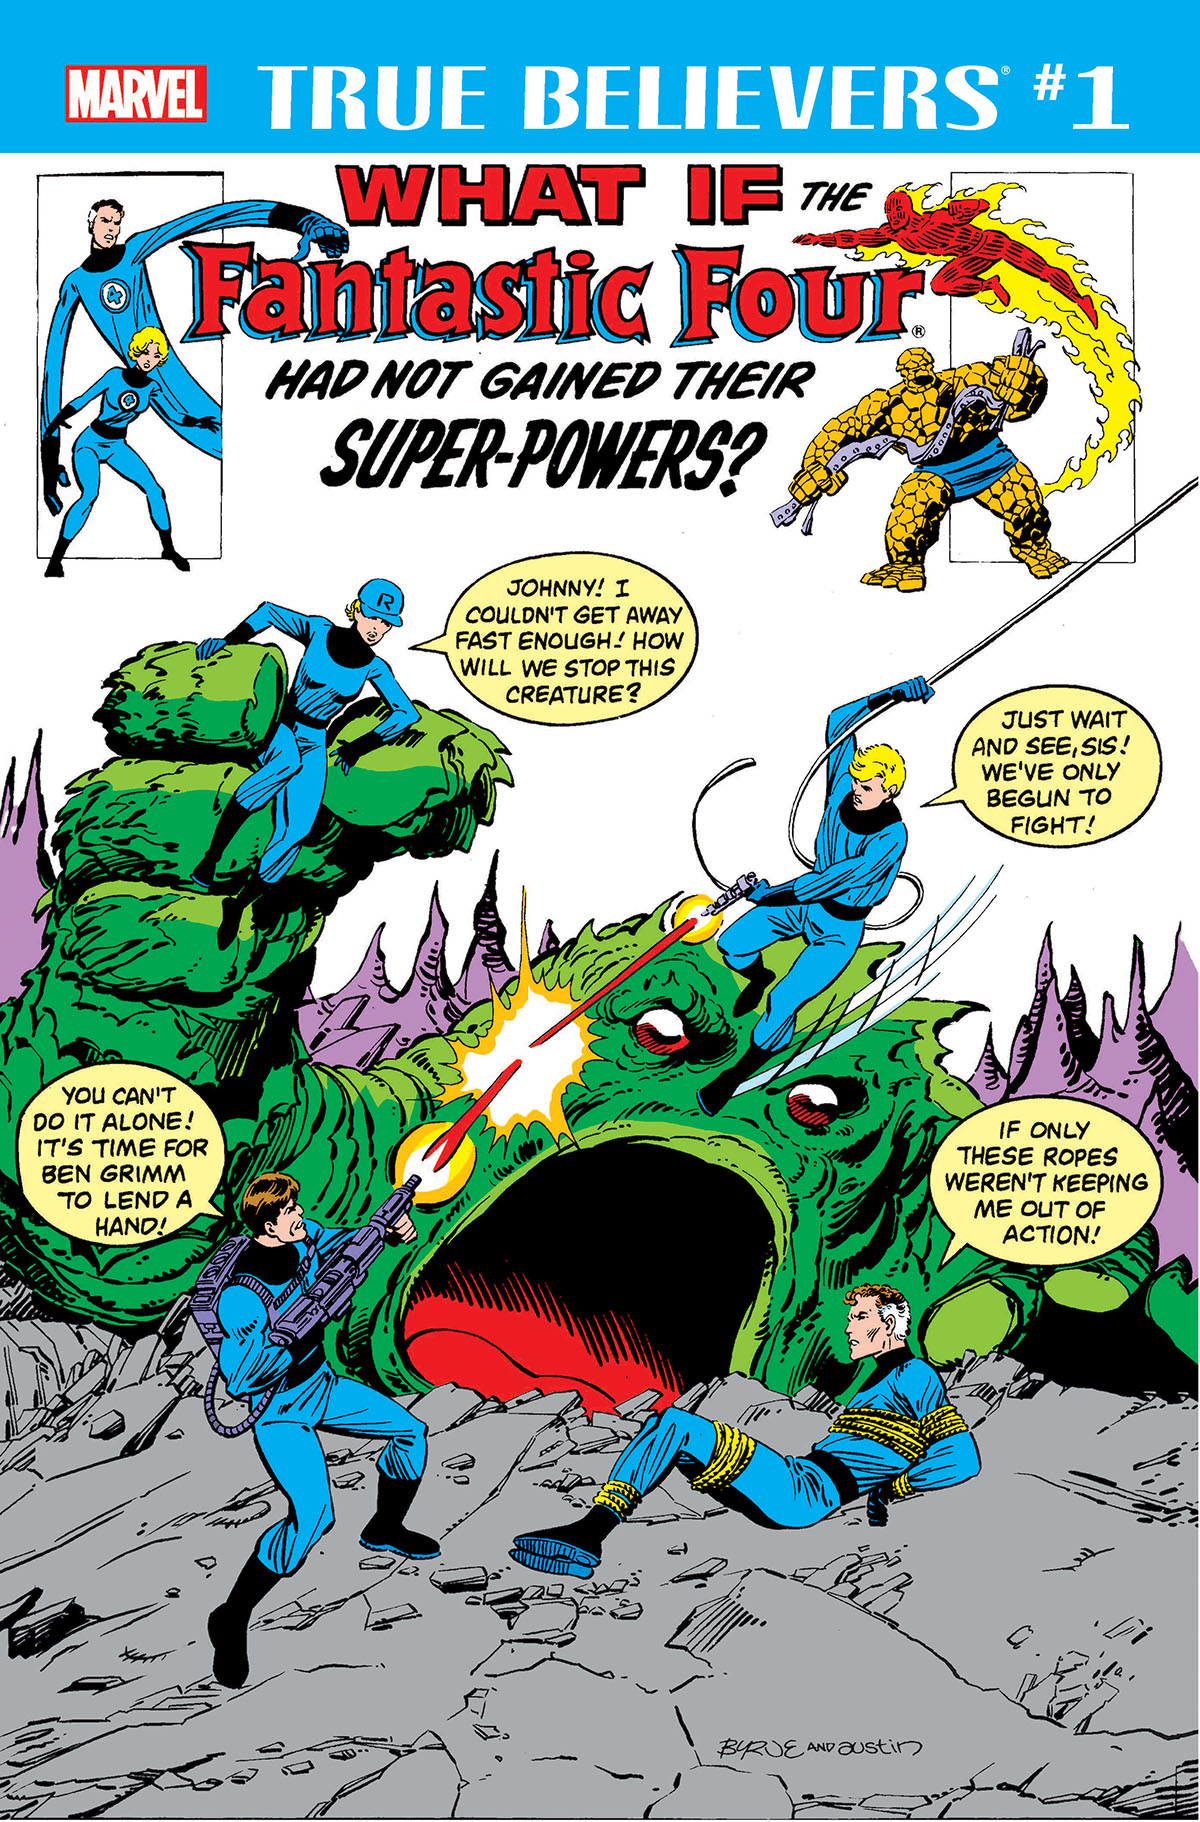 True Believers: What If the Fantastic Four Had Not Gained Their Super-Powers? Vol 1